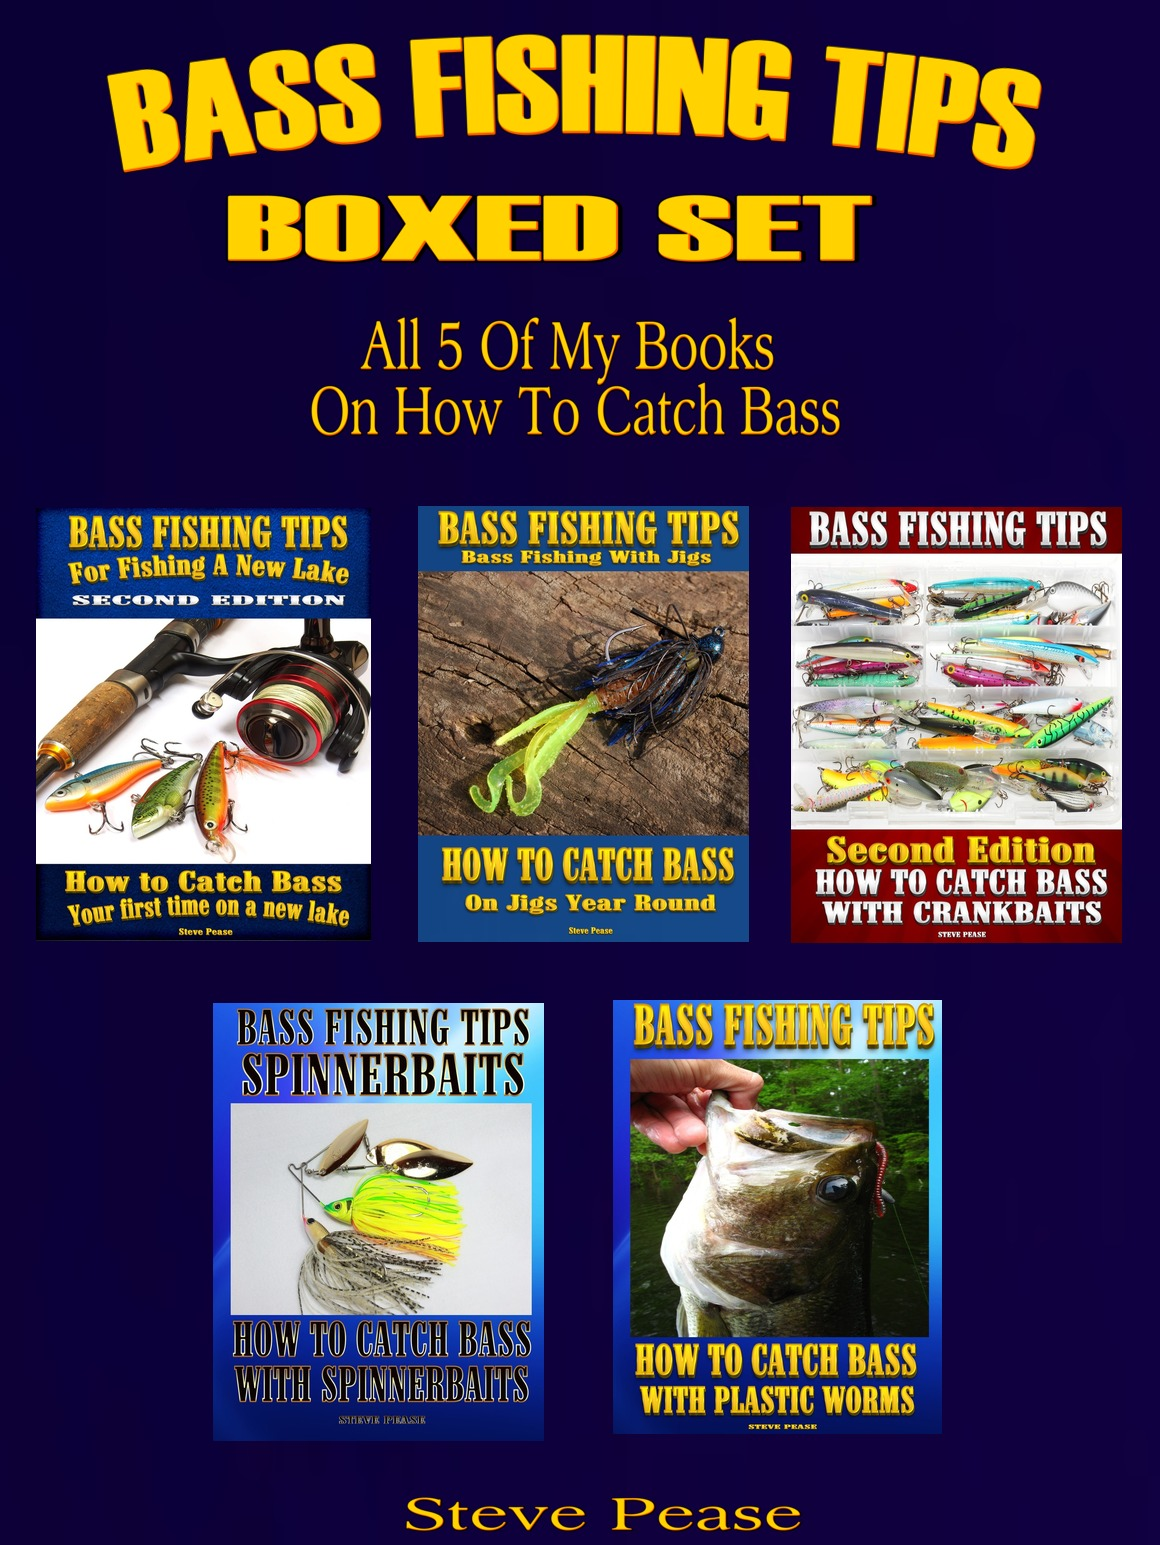 5 BOOK SET ON BASS FISHING